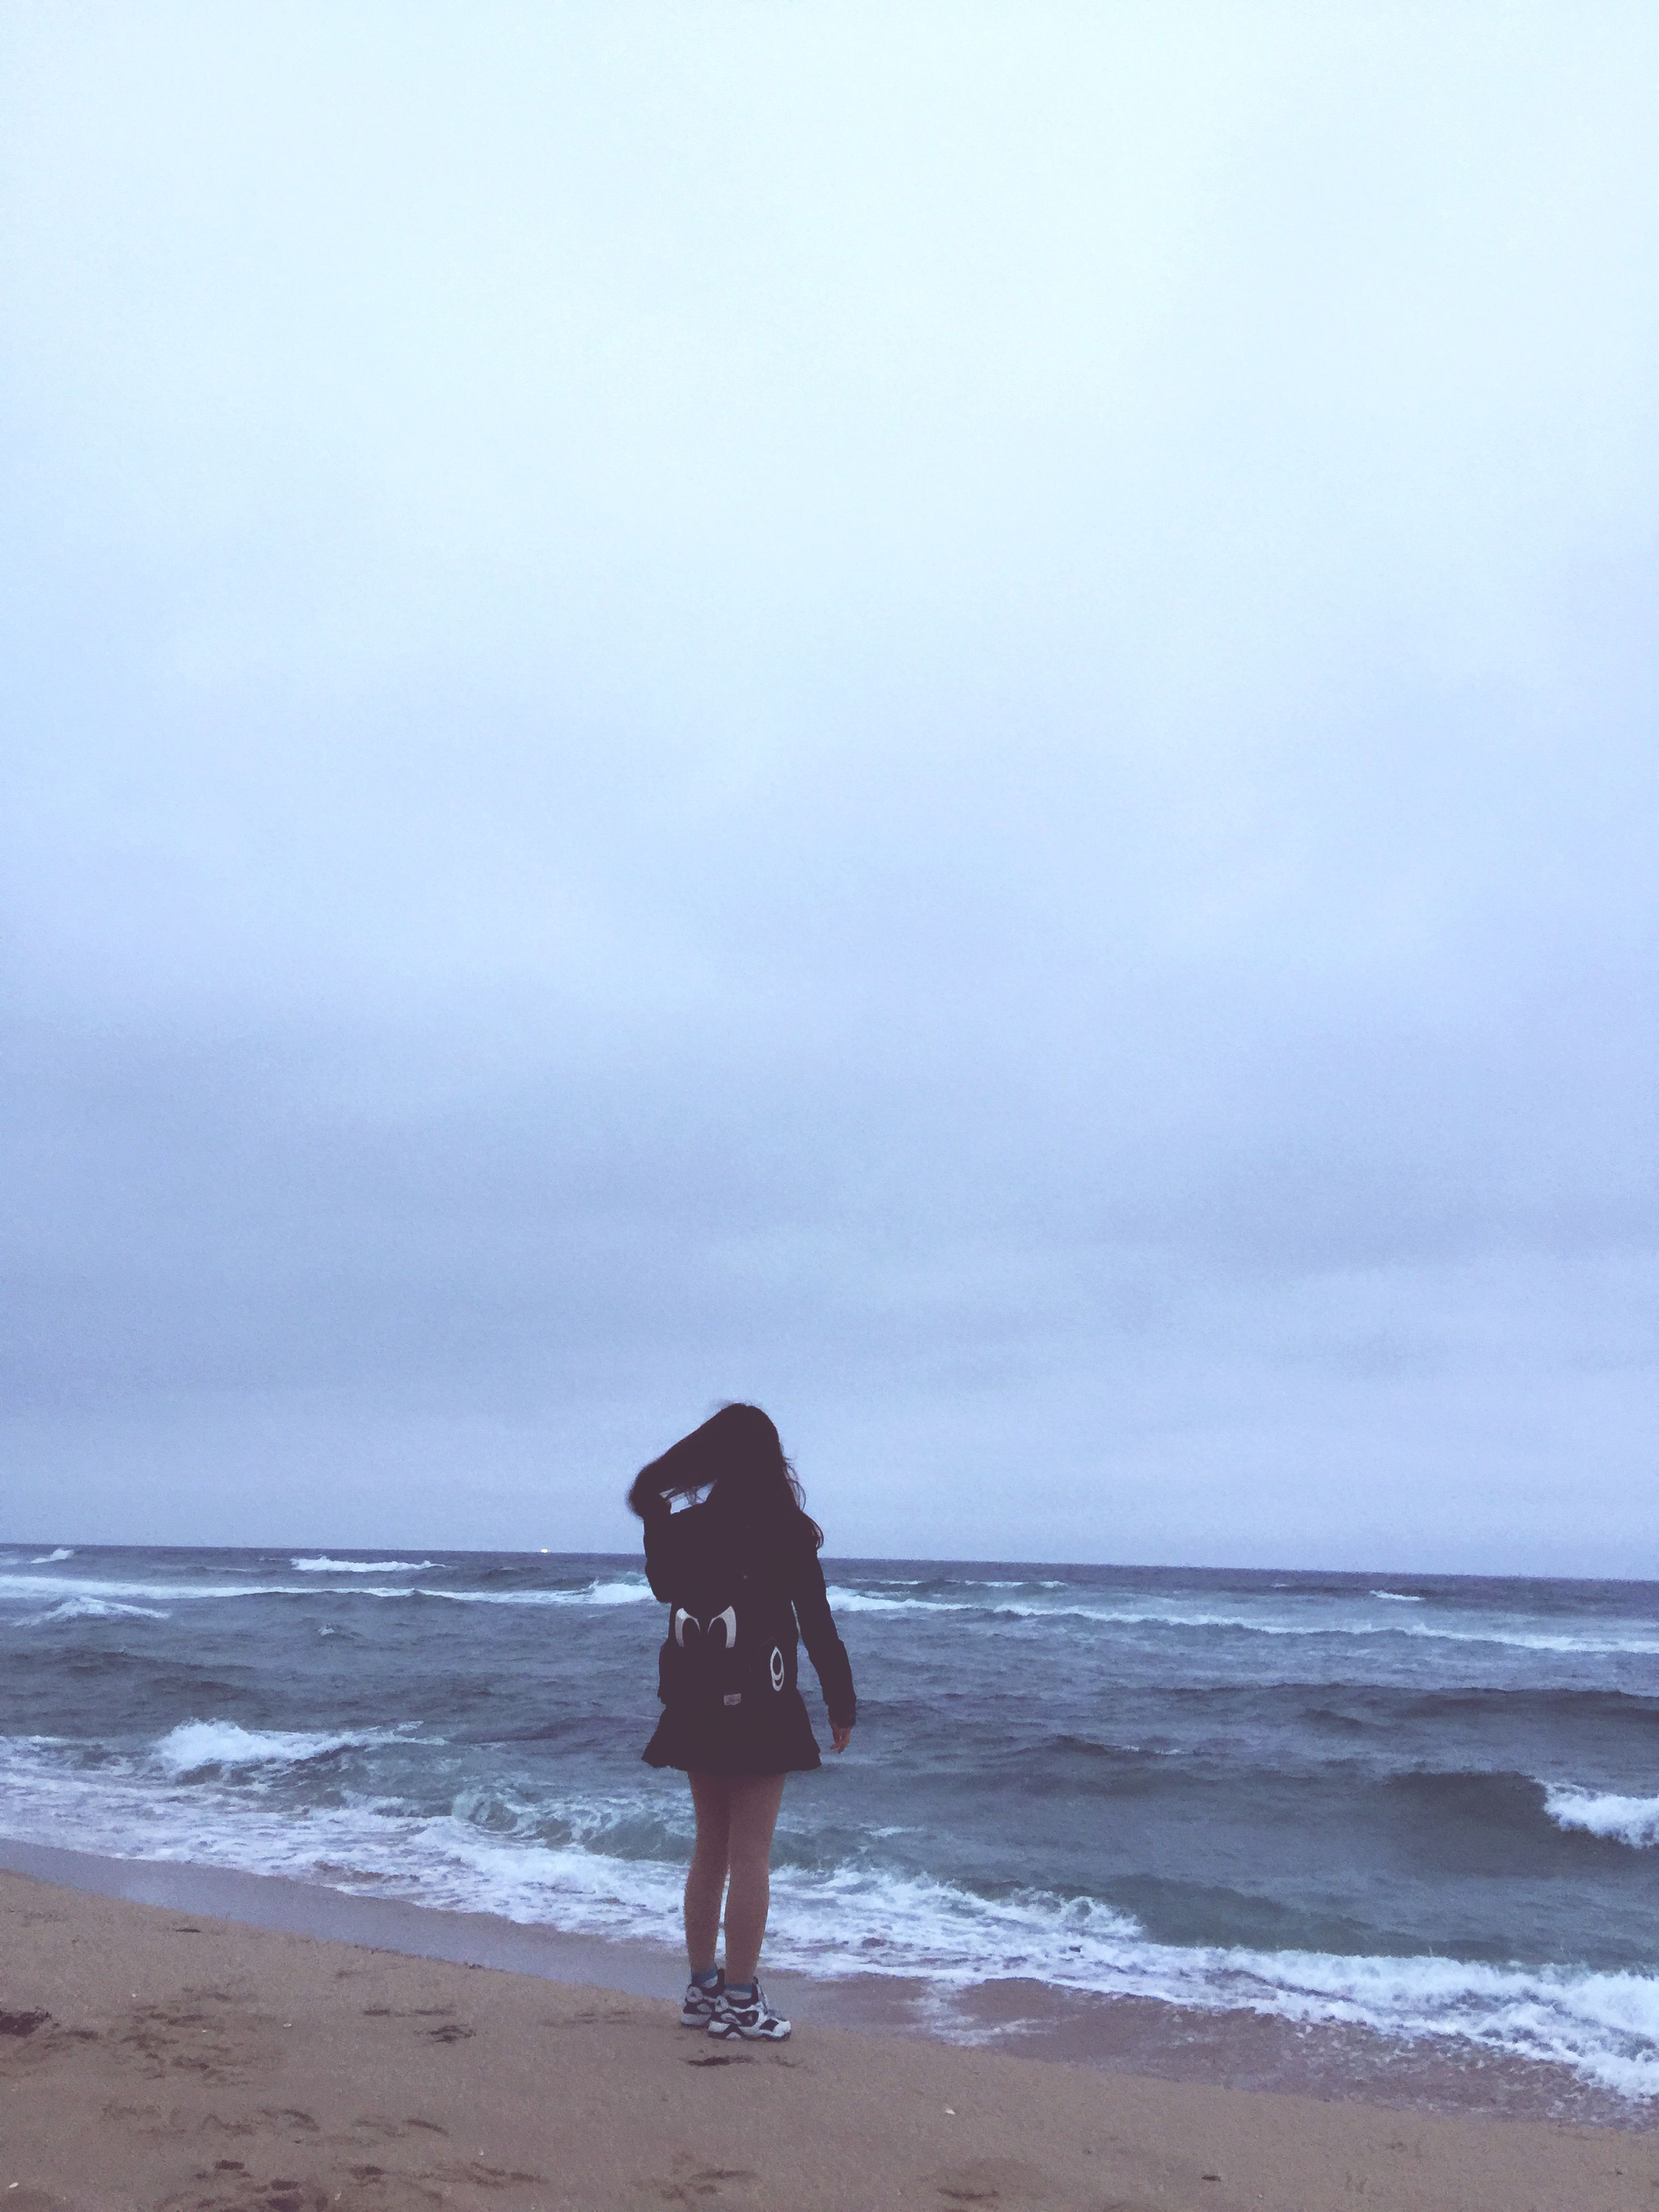 beach, sea, horizon over water, shore, sand, water, sky, rear view, tranquil scene, tranquility, full length, standing, scenics, leisure activity, lifestyles, beauty in nature, wave, nature